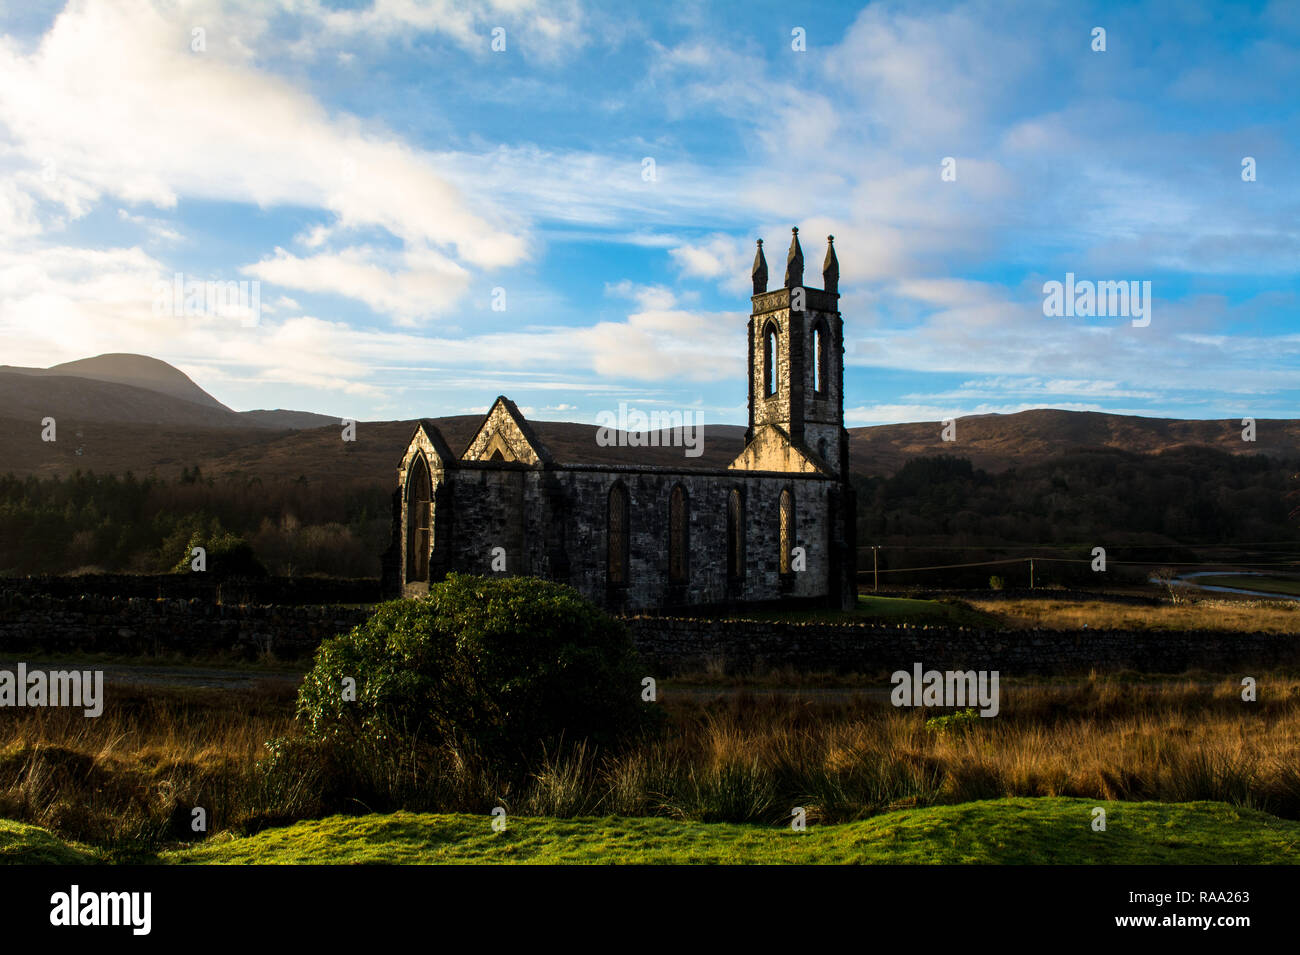 Ruined Church of Ireland in The Poisoned Glen Dunlewey Gweedore Donegal Ireland Europe - Stock Image